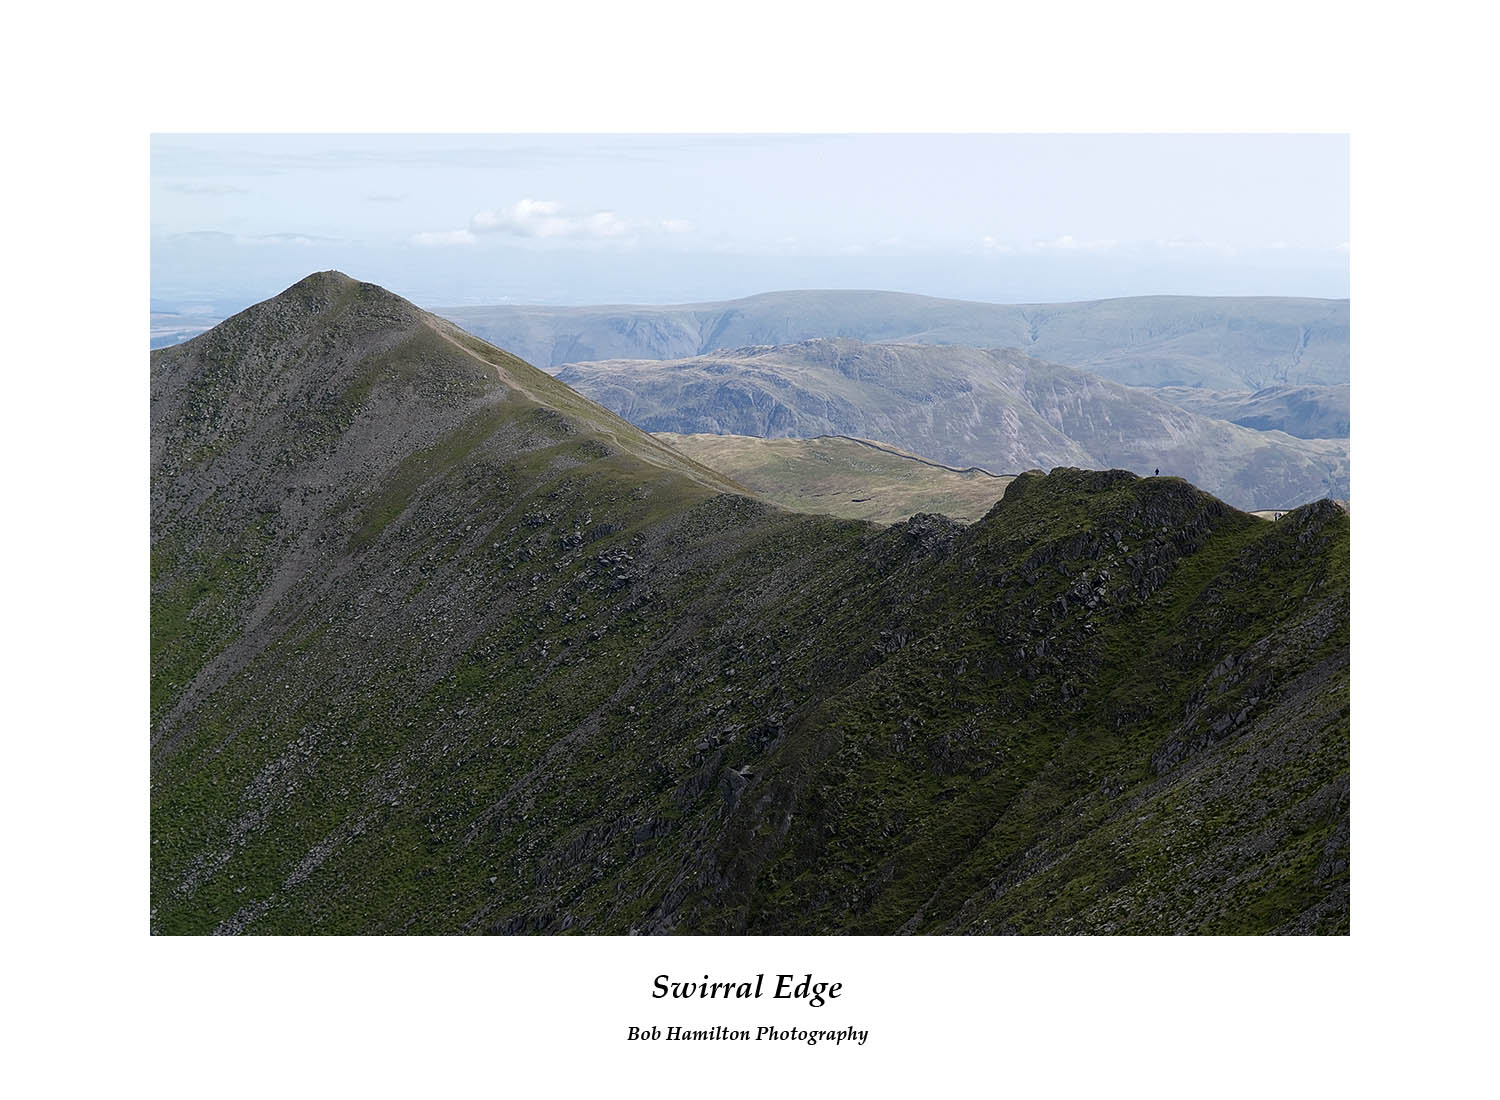 DSF1084 Walker on Swirral Edge seen from Helvellyn Lower Man